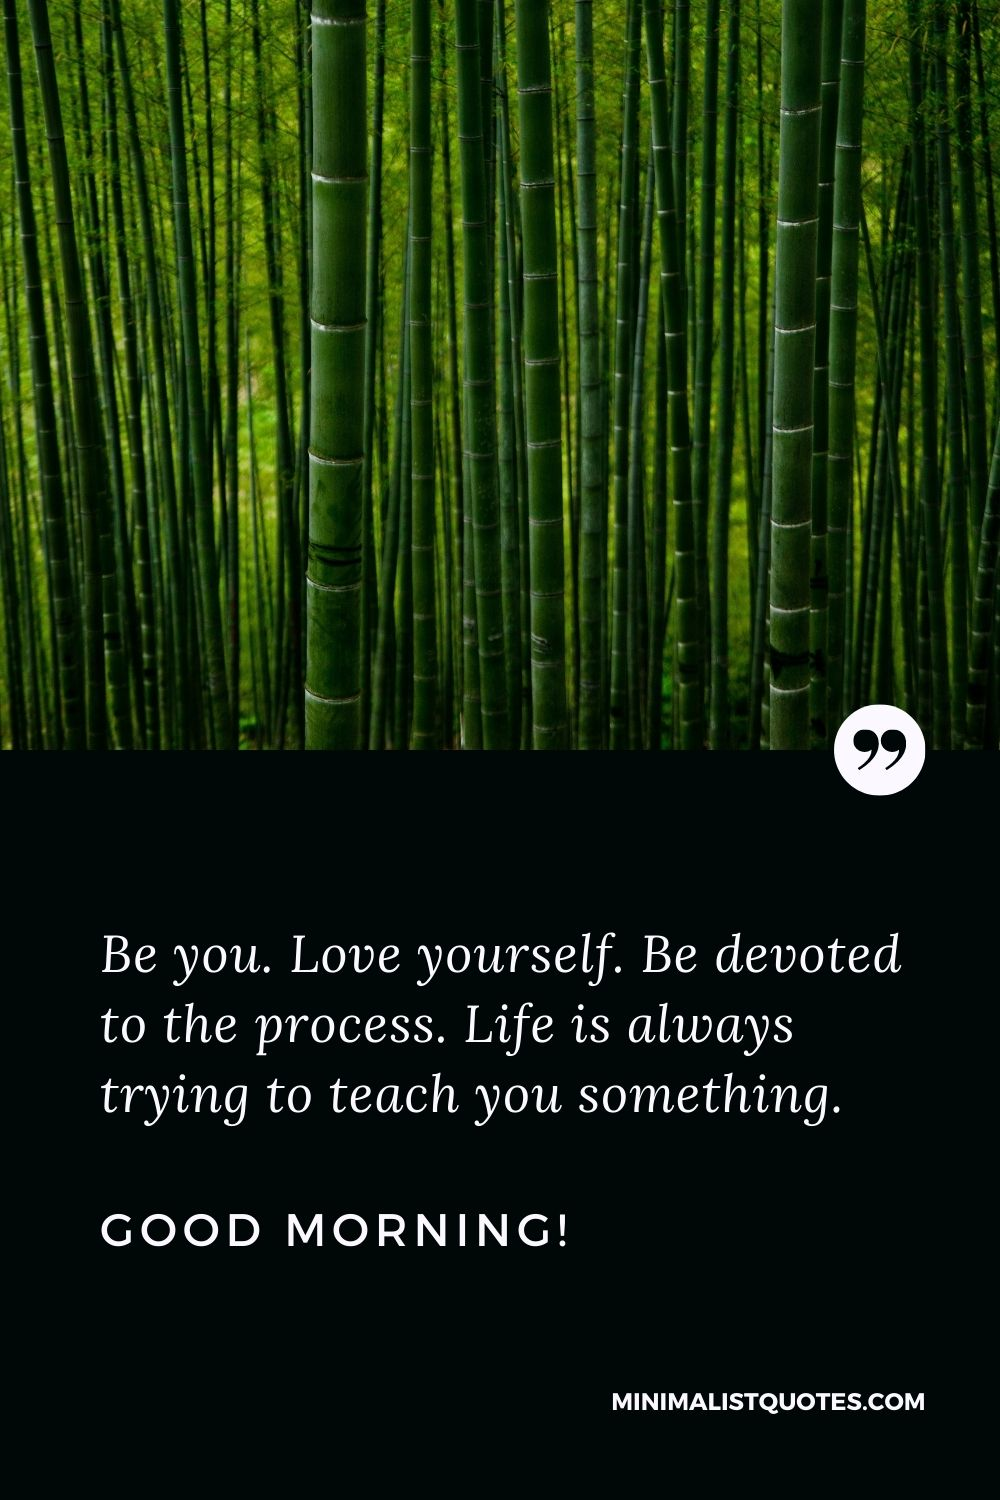 Good morning images with quotes for WhatsApp: Be you. Love yourself. Be devoted to the process. Life is always trying to teach you something. Good Morning!